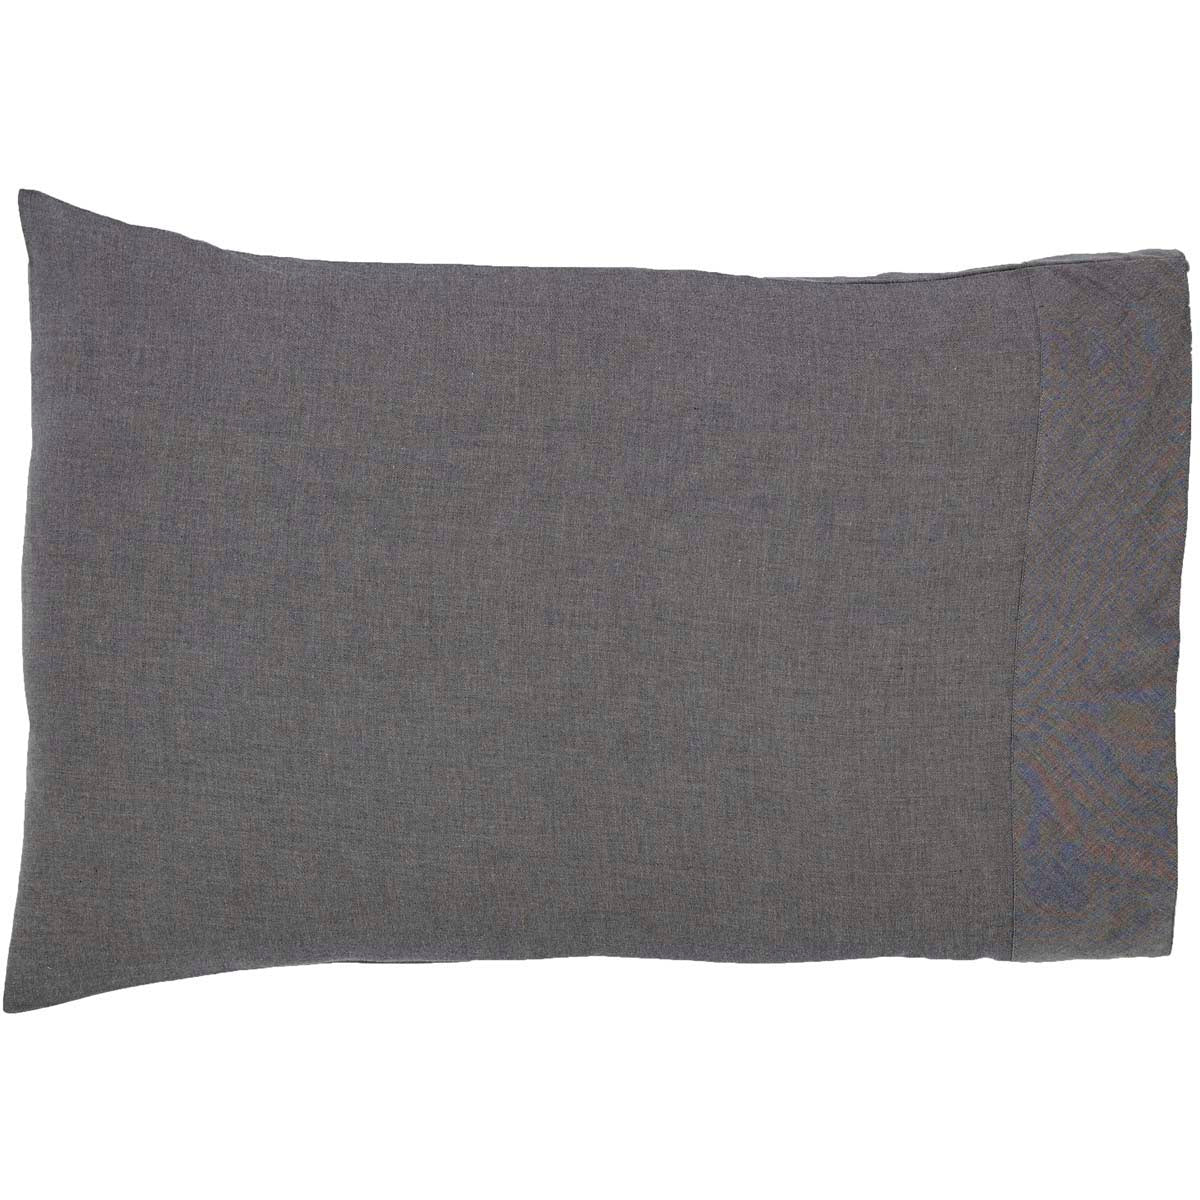 Black Chambray Standard Pillow Case Set of 2 21x30 - Woodrol